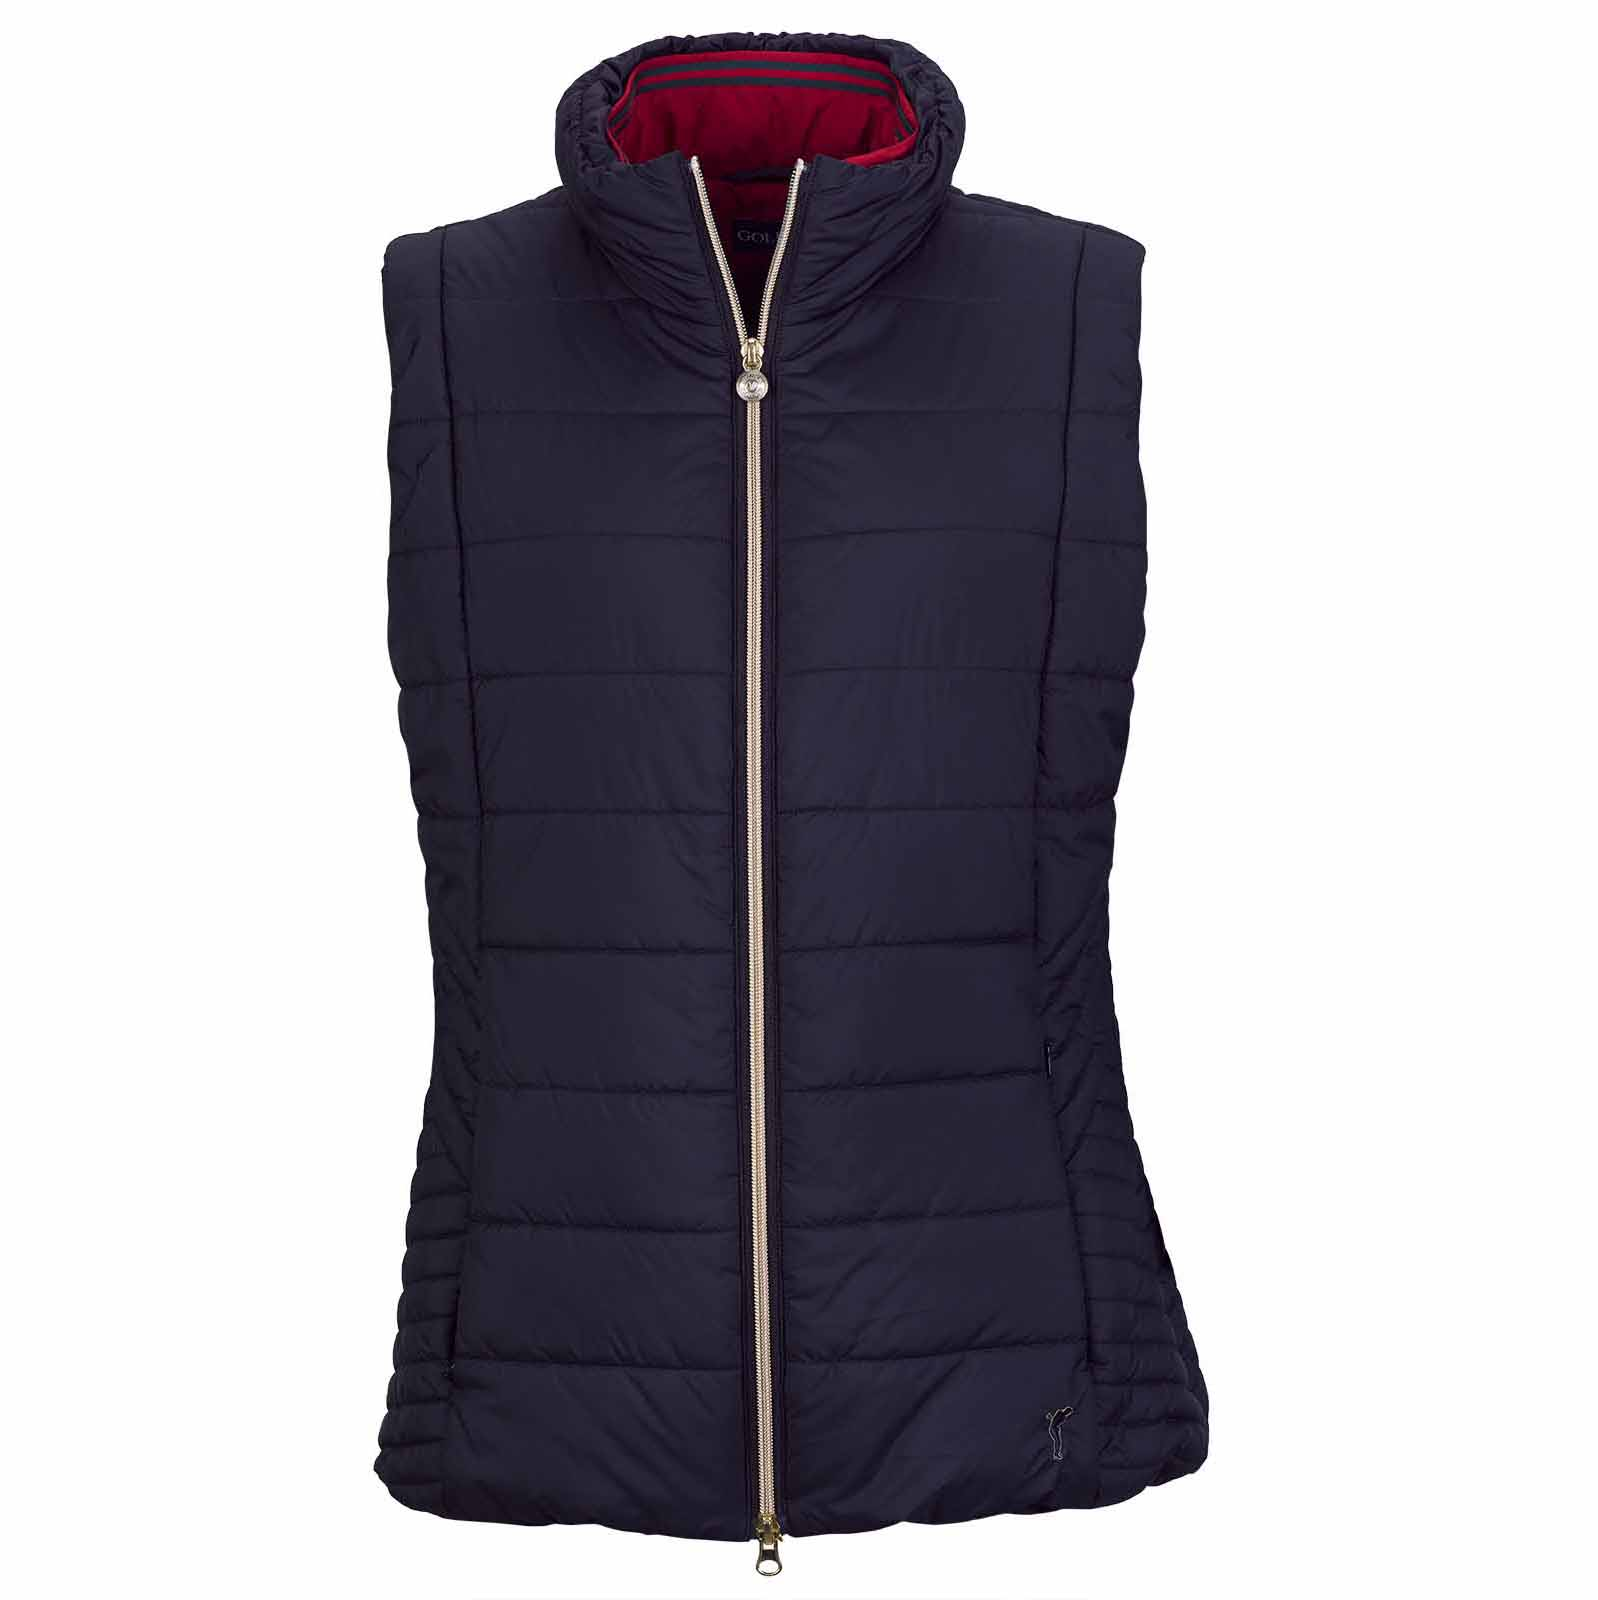 Wind-Protection Damen Golfweste